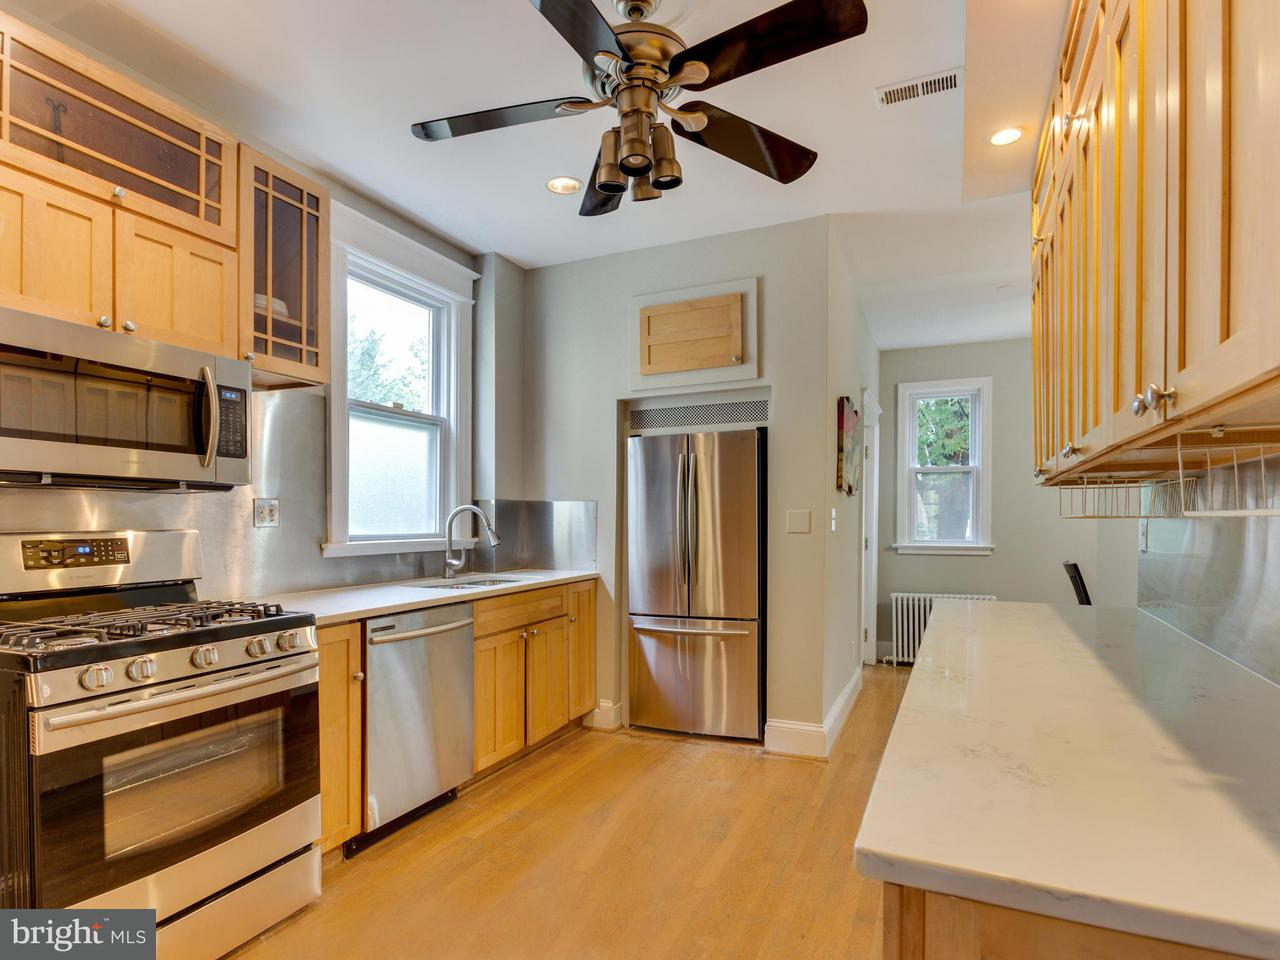 Additional photo for property listing at 1211 Farragut St Nw 1211 Farragut St Nw Washington, District Of Columbia 20011 Verenigde Staten